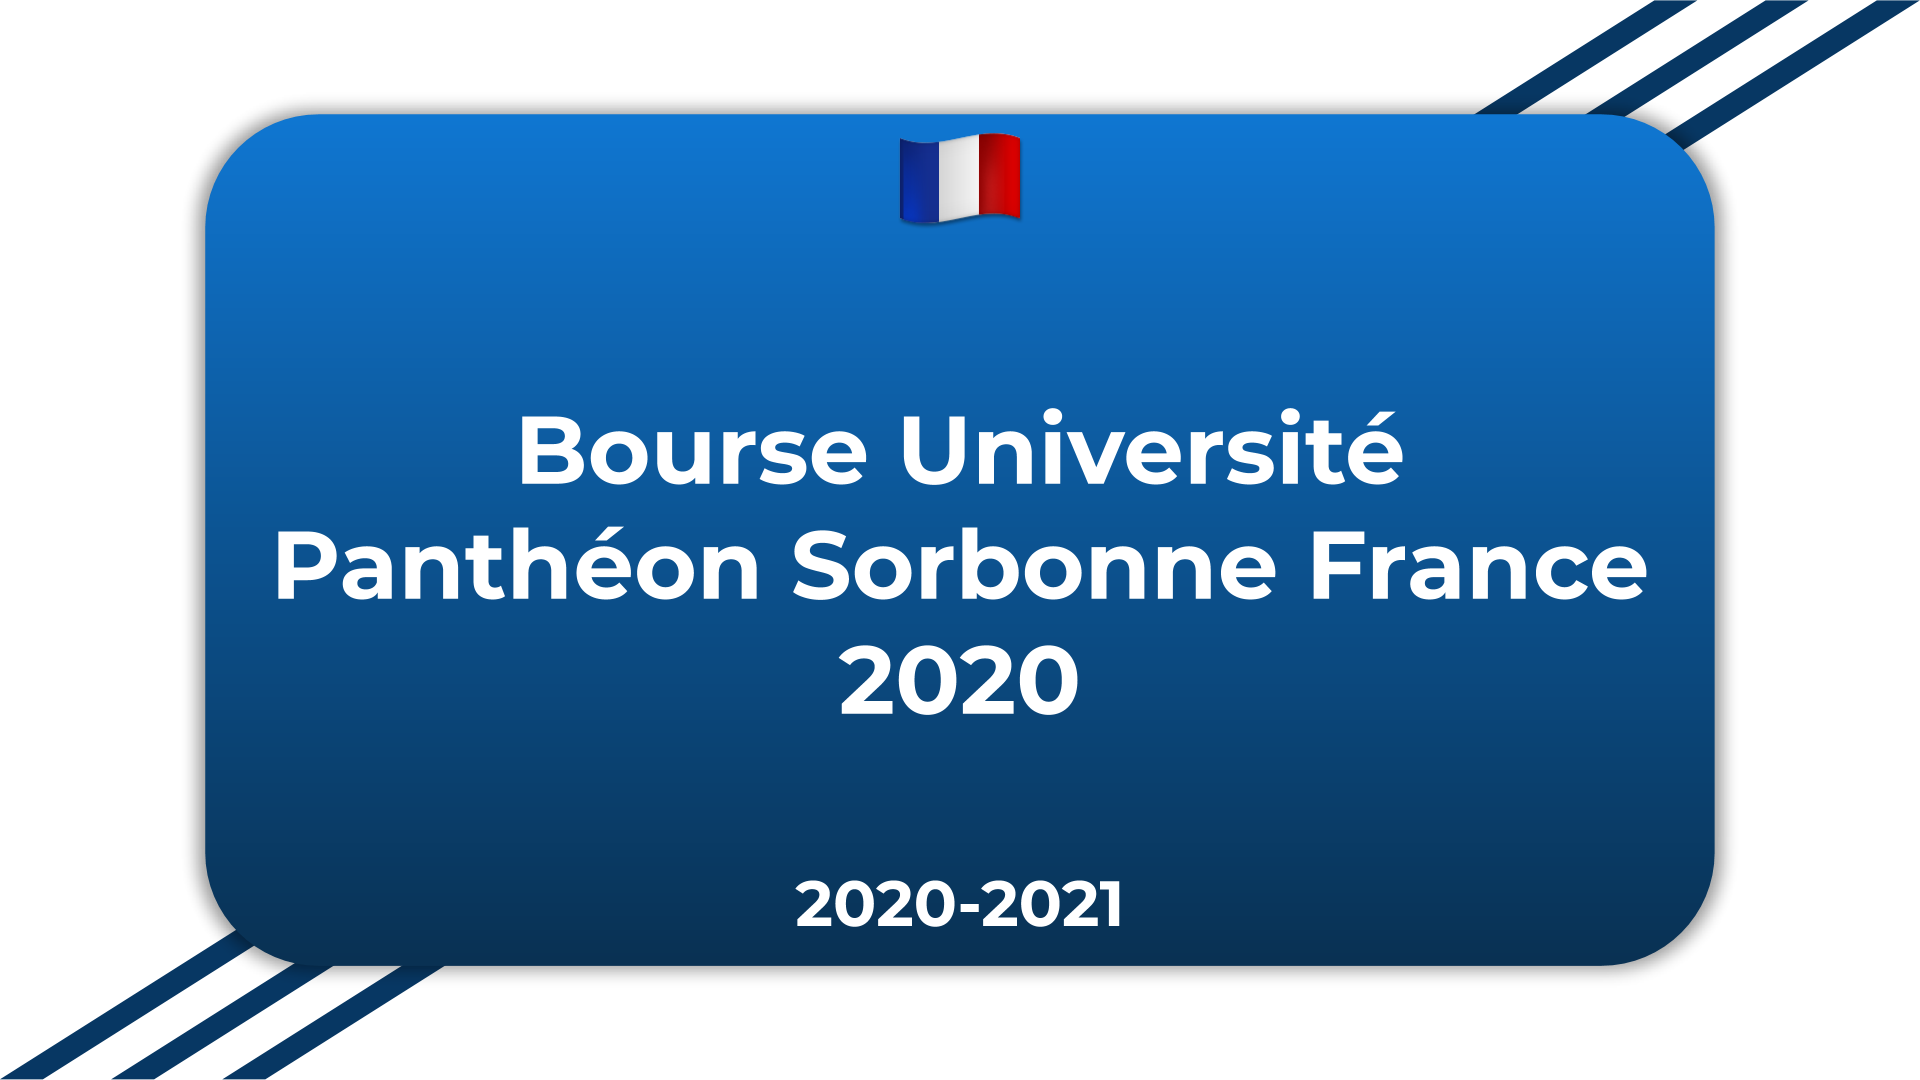 Bourse Université Panthéon Sorbonne France 2020